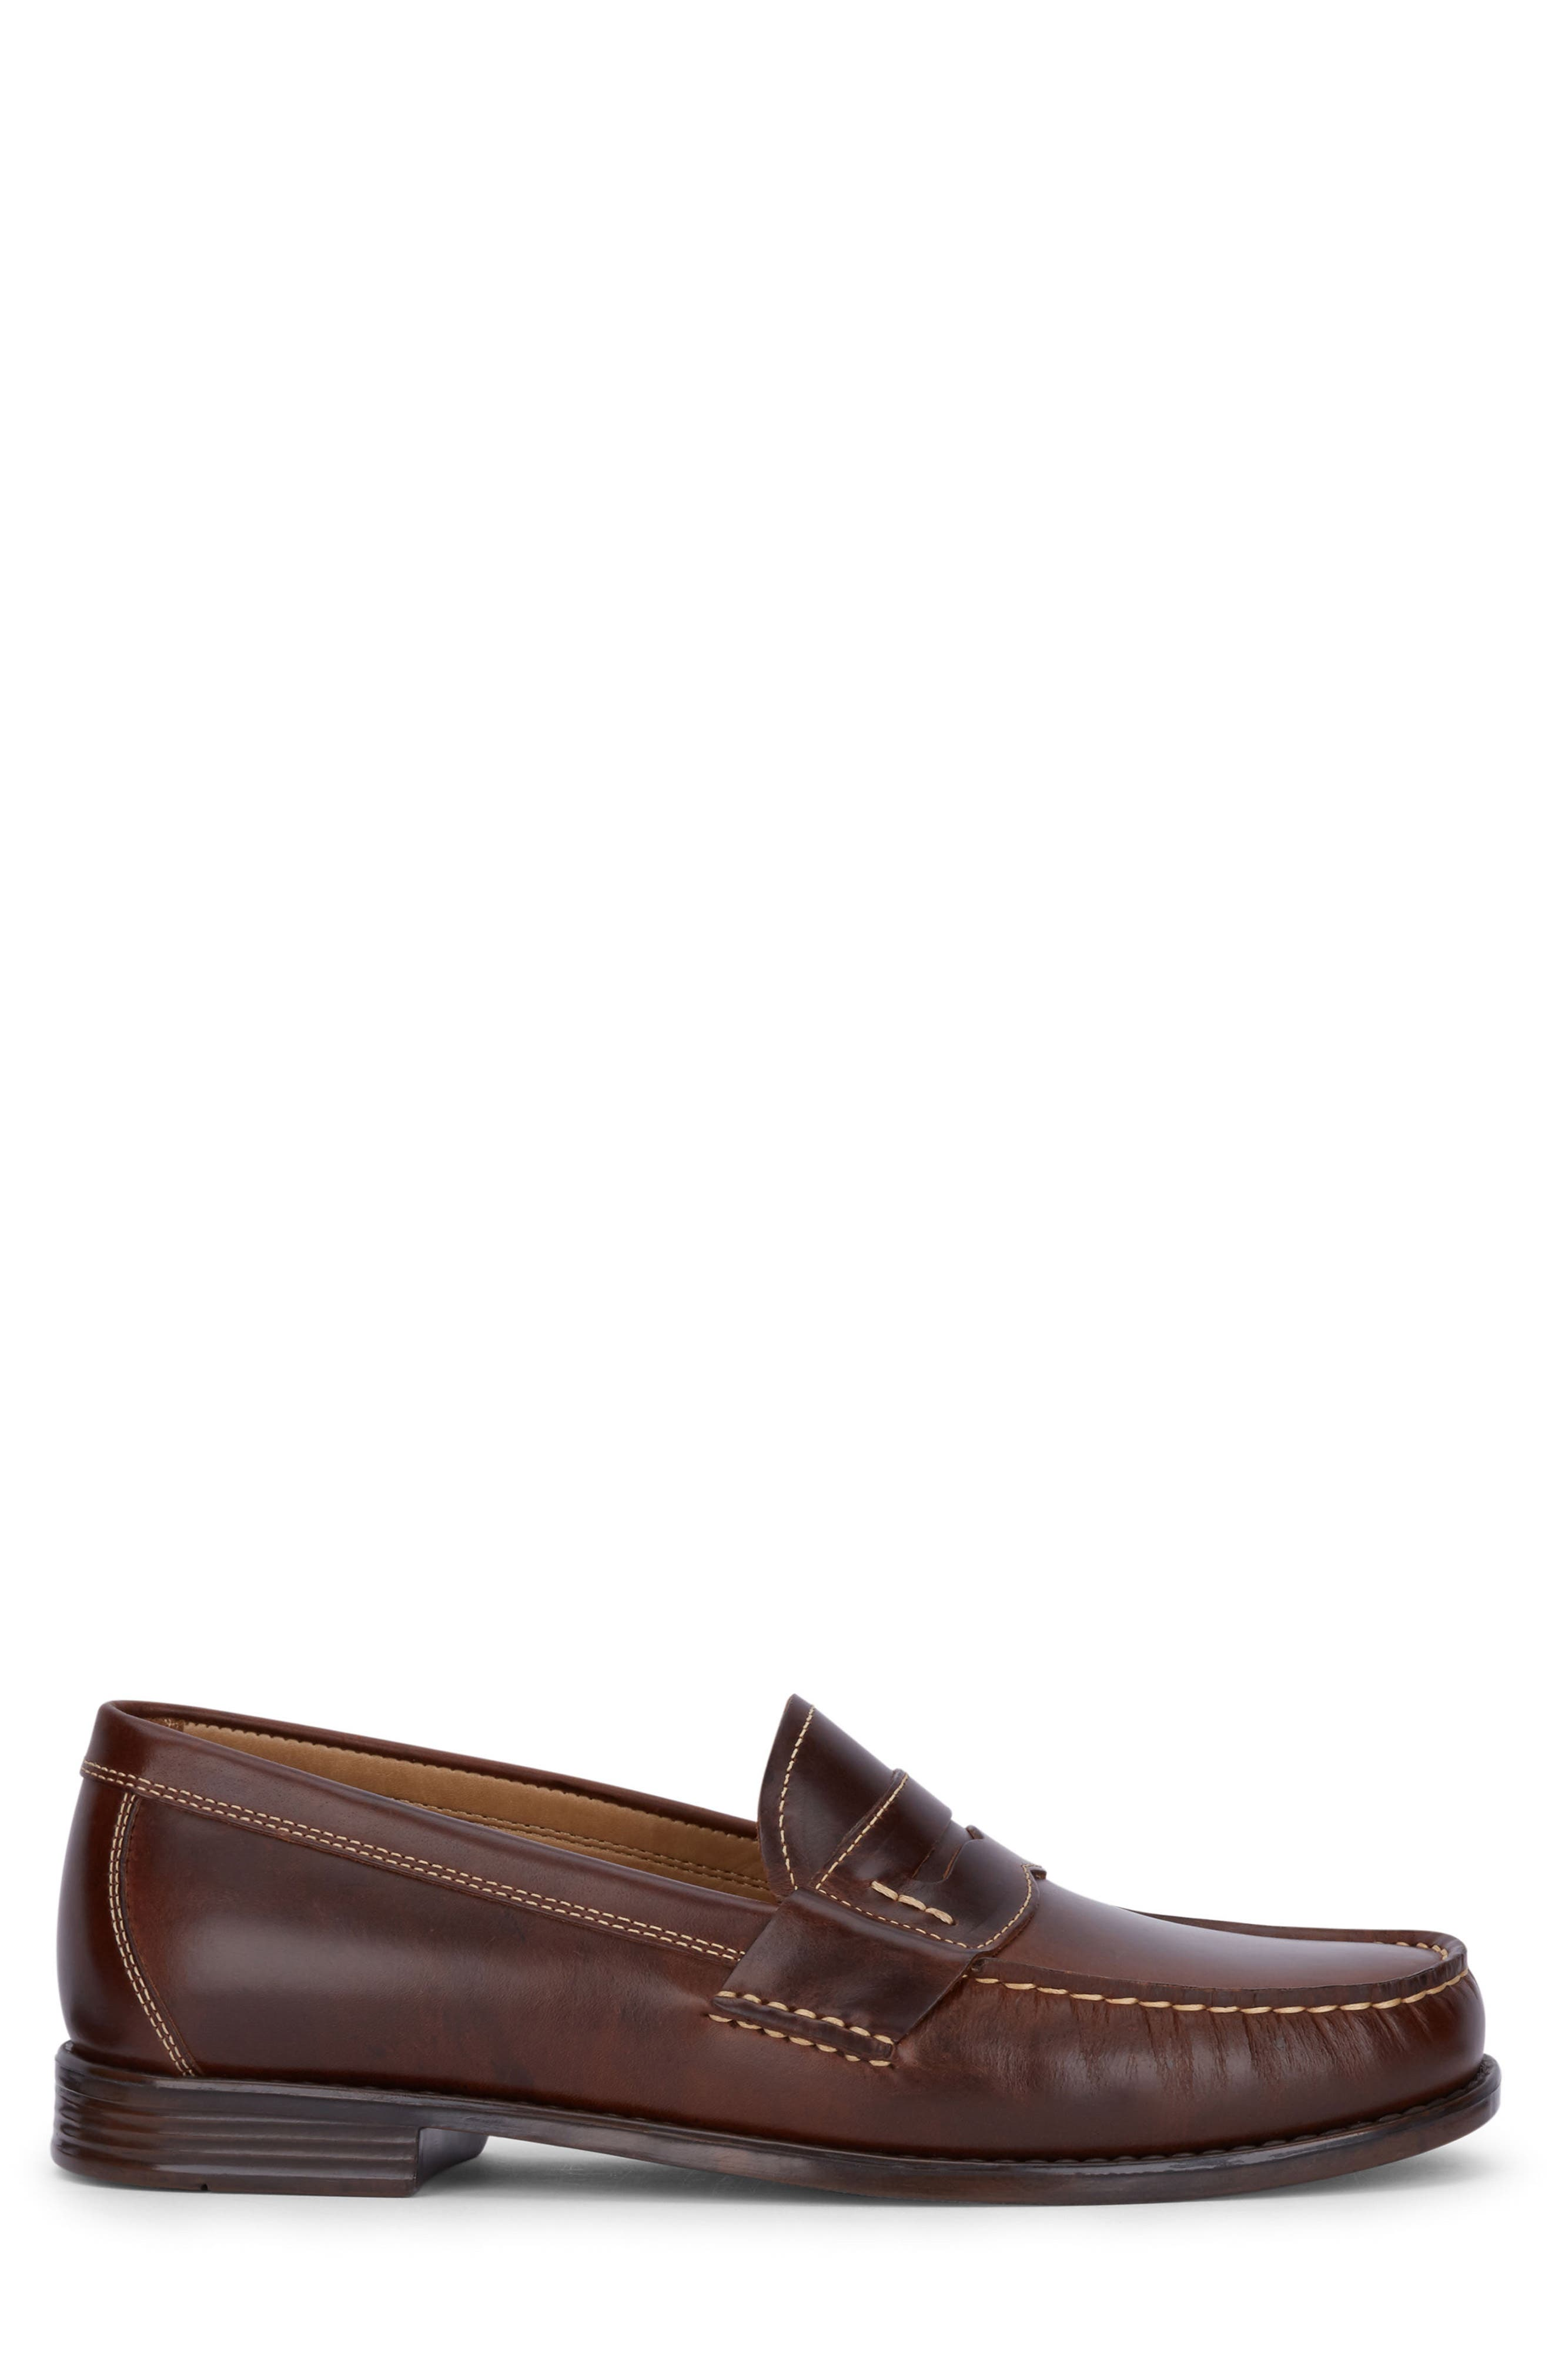 Wagner Penny Loafer,                             Alternate thumbnail 3, color,                             DARK BROWN LEATHER